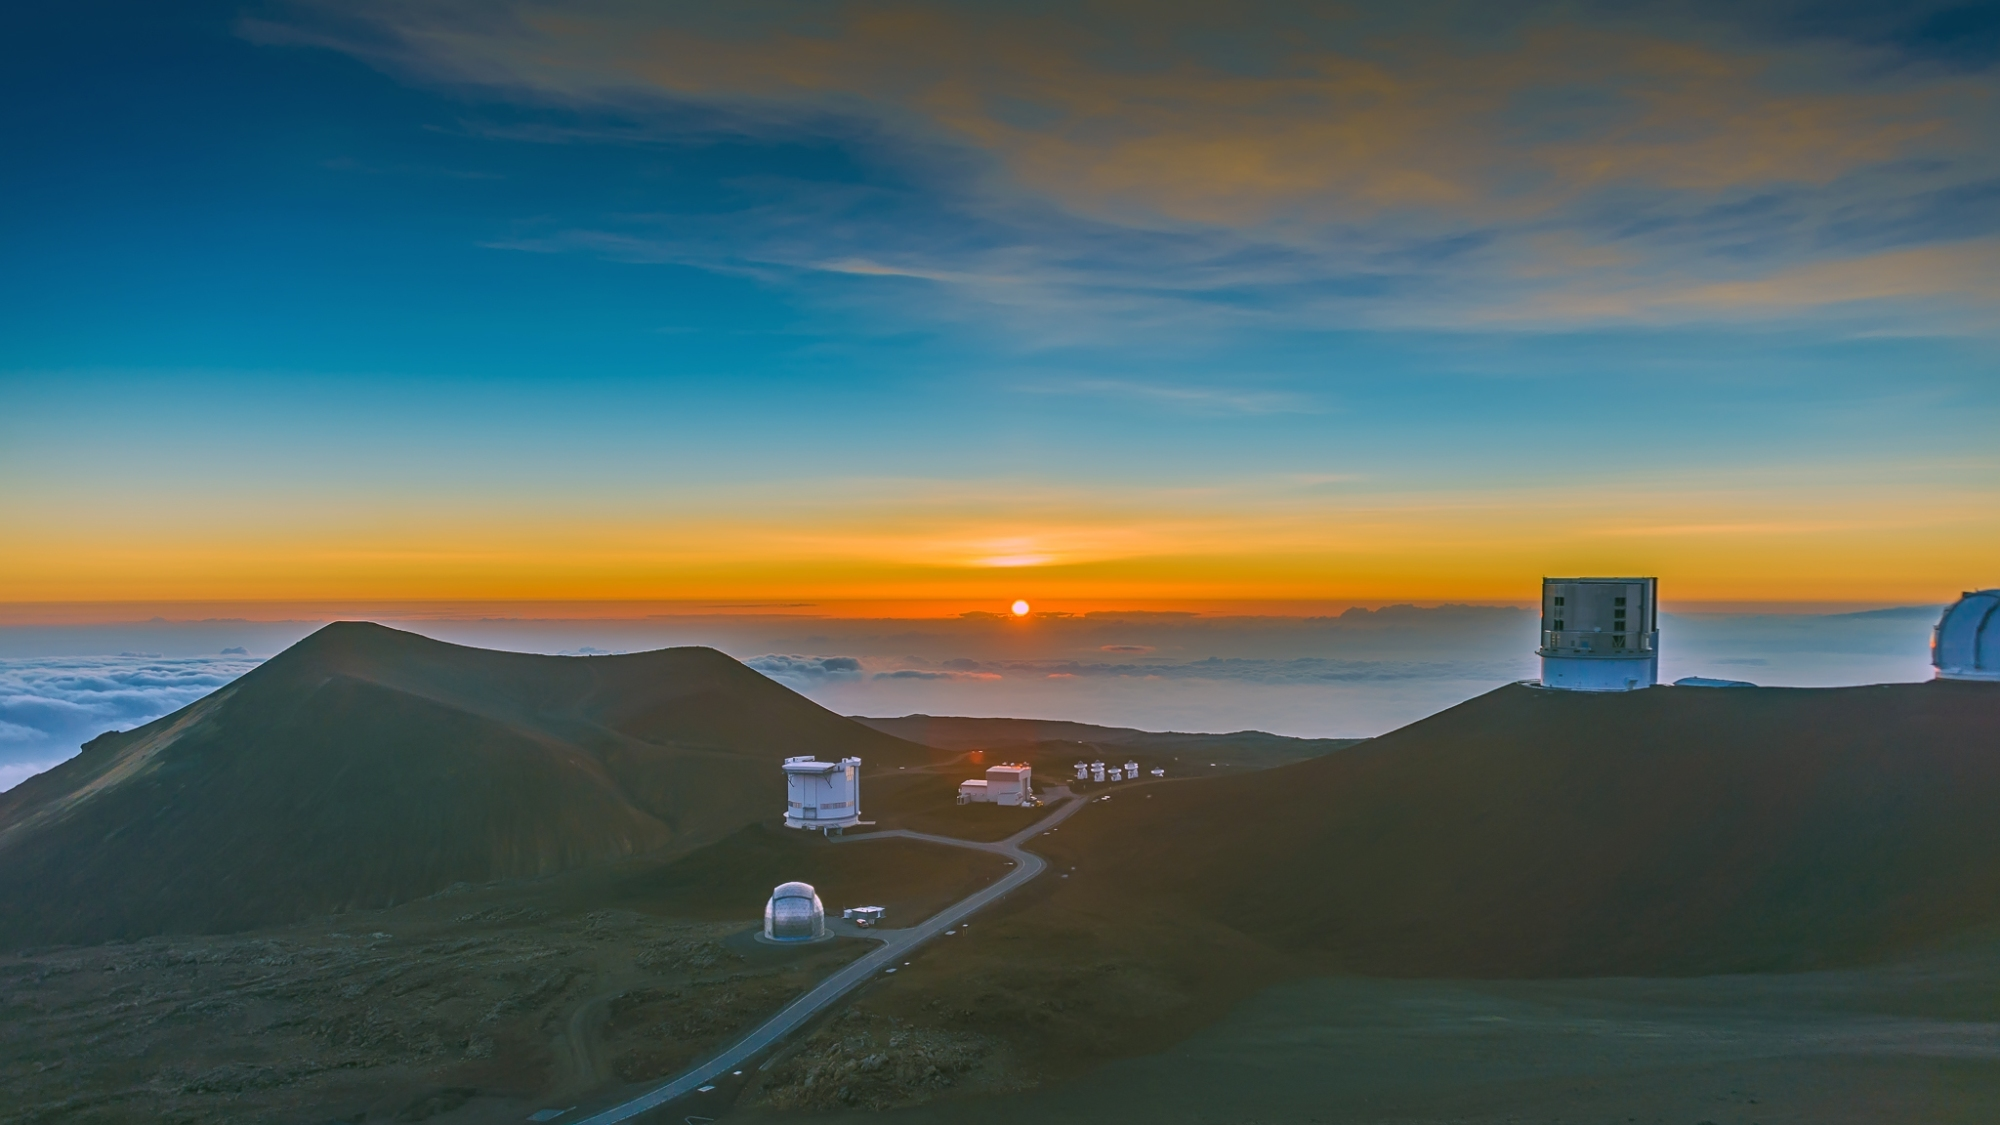 Image shared by OutandSeen.com under a Creative Commons license. Sunset from Mauna Kea